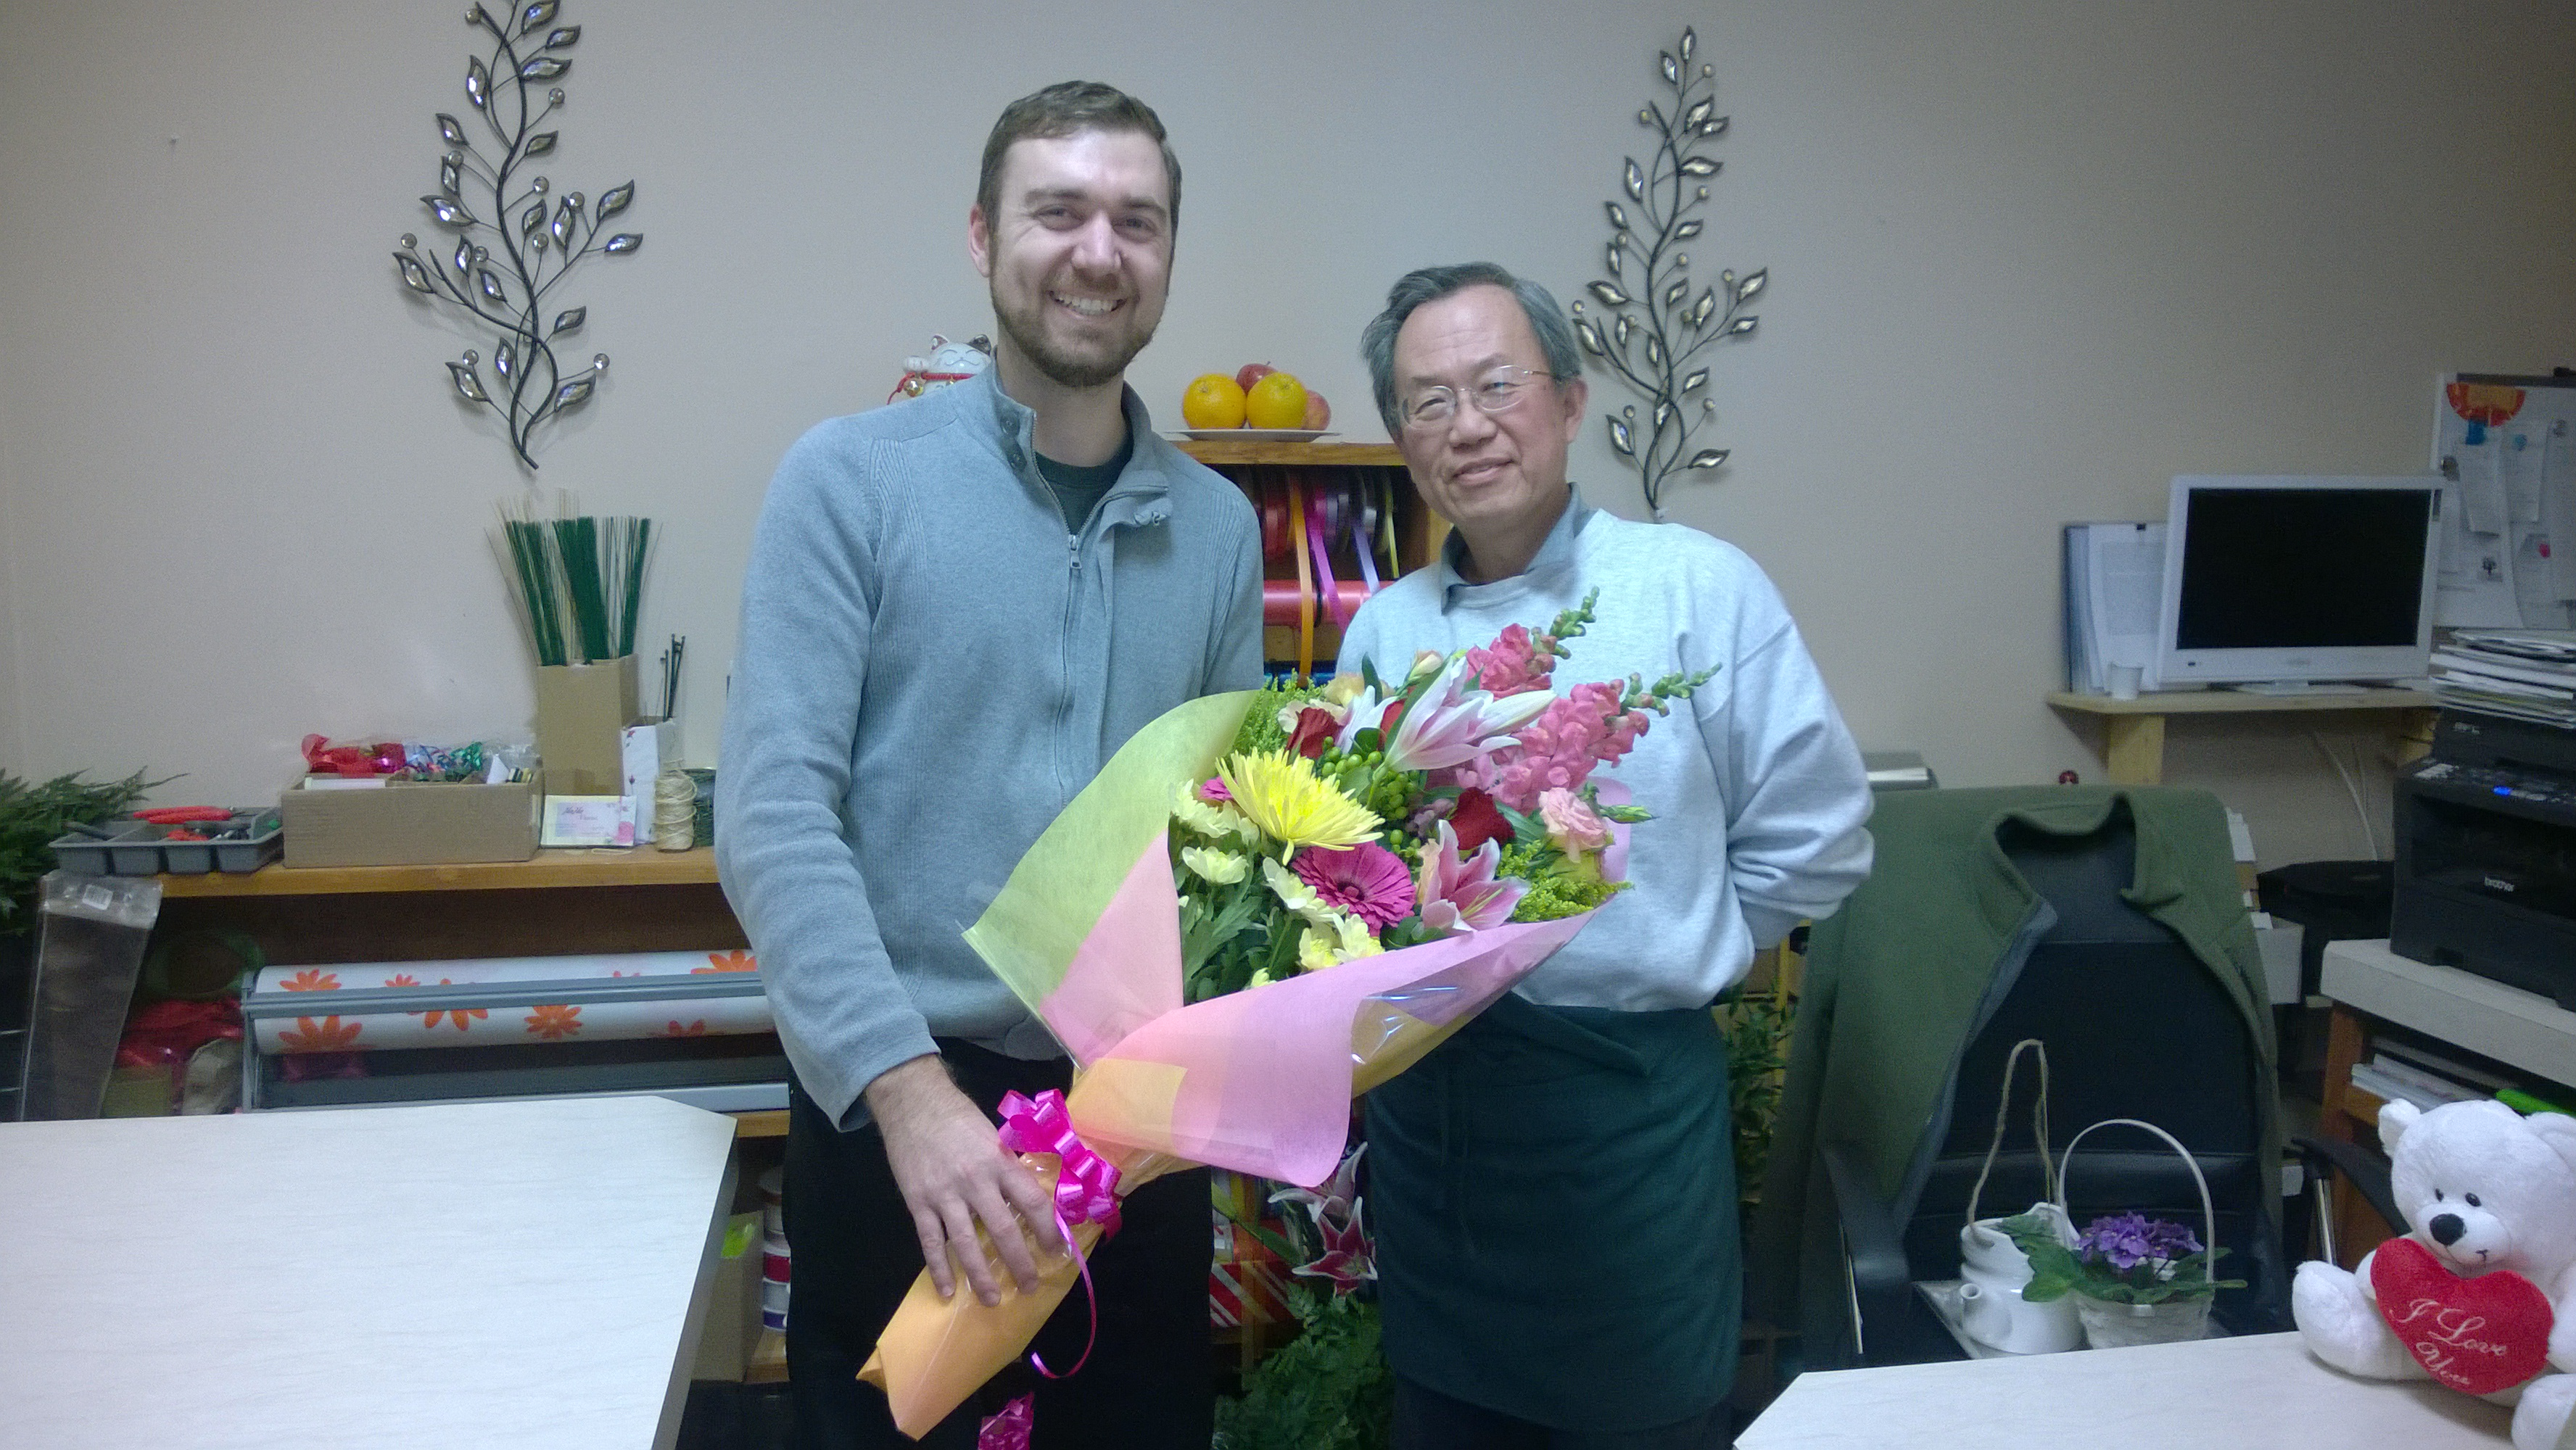 Mark Rullo with Shiro, the owner of NaNa Florist, buying an early Valentine's Day gift for his wife, Stephanie.